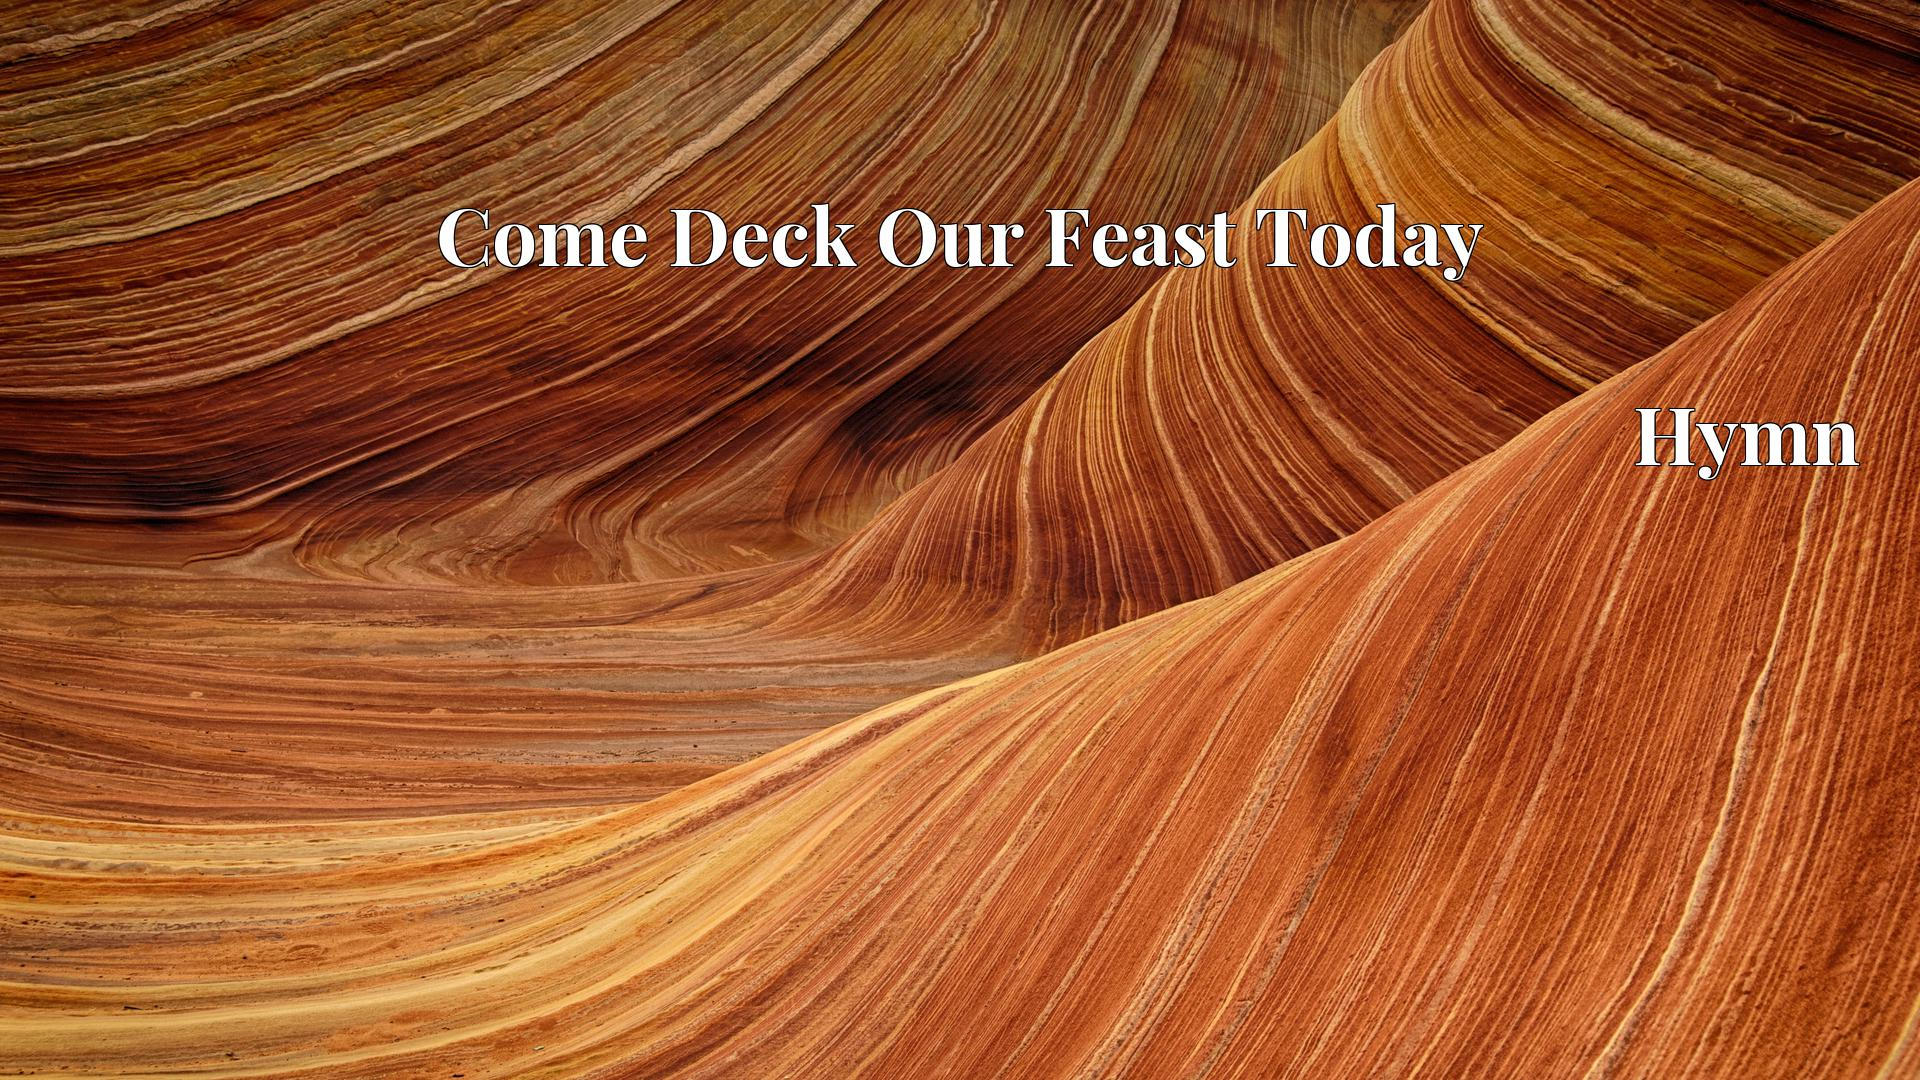 Come Deck Our Feast Today - Hymn